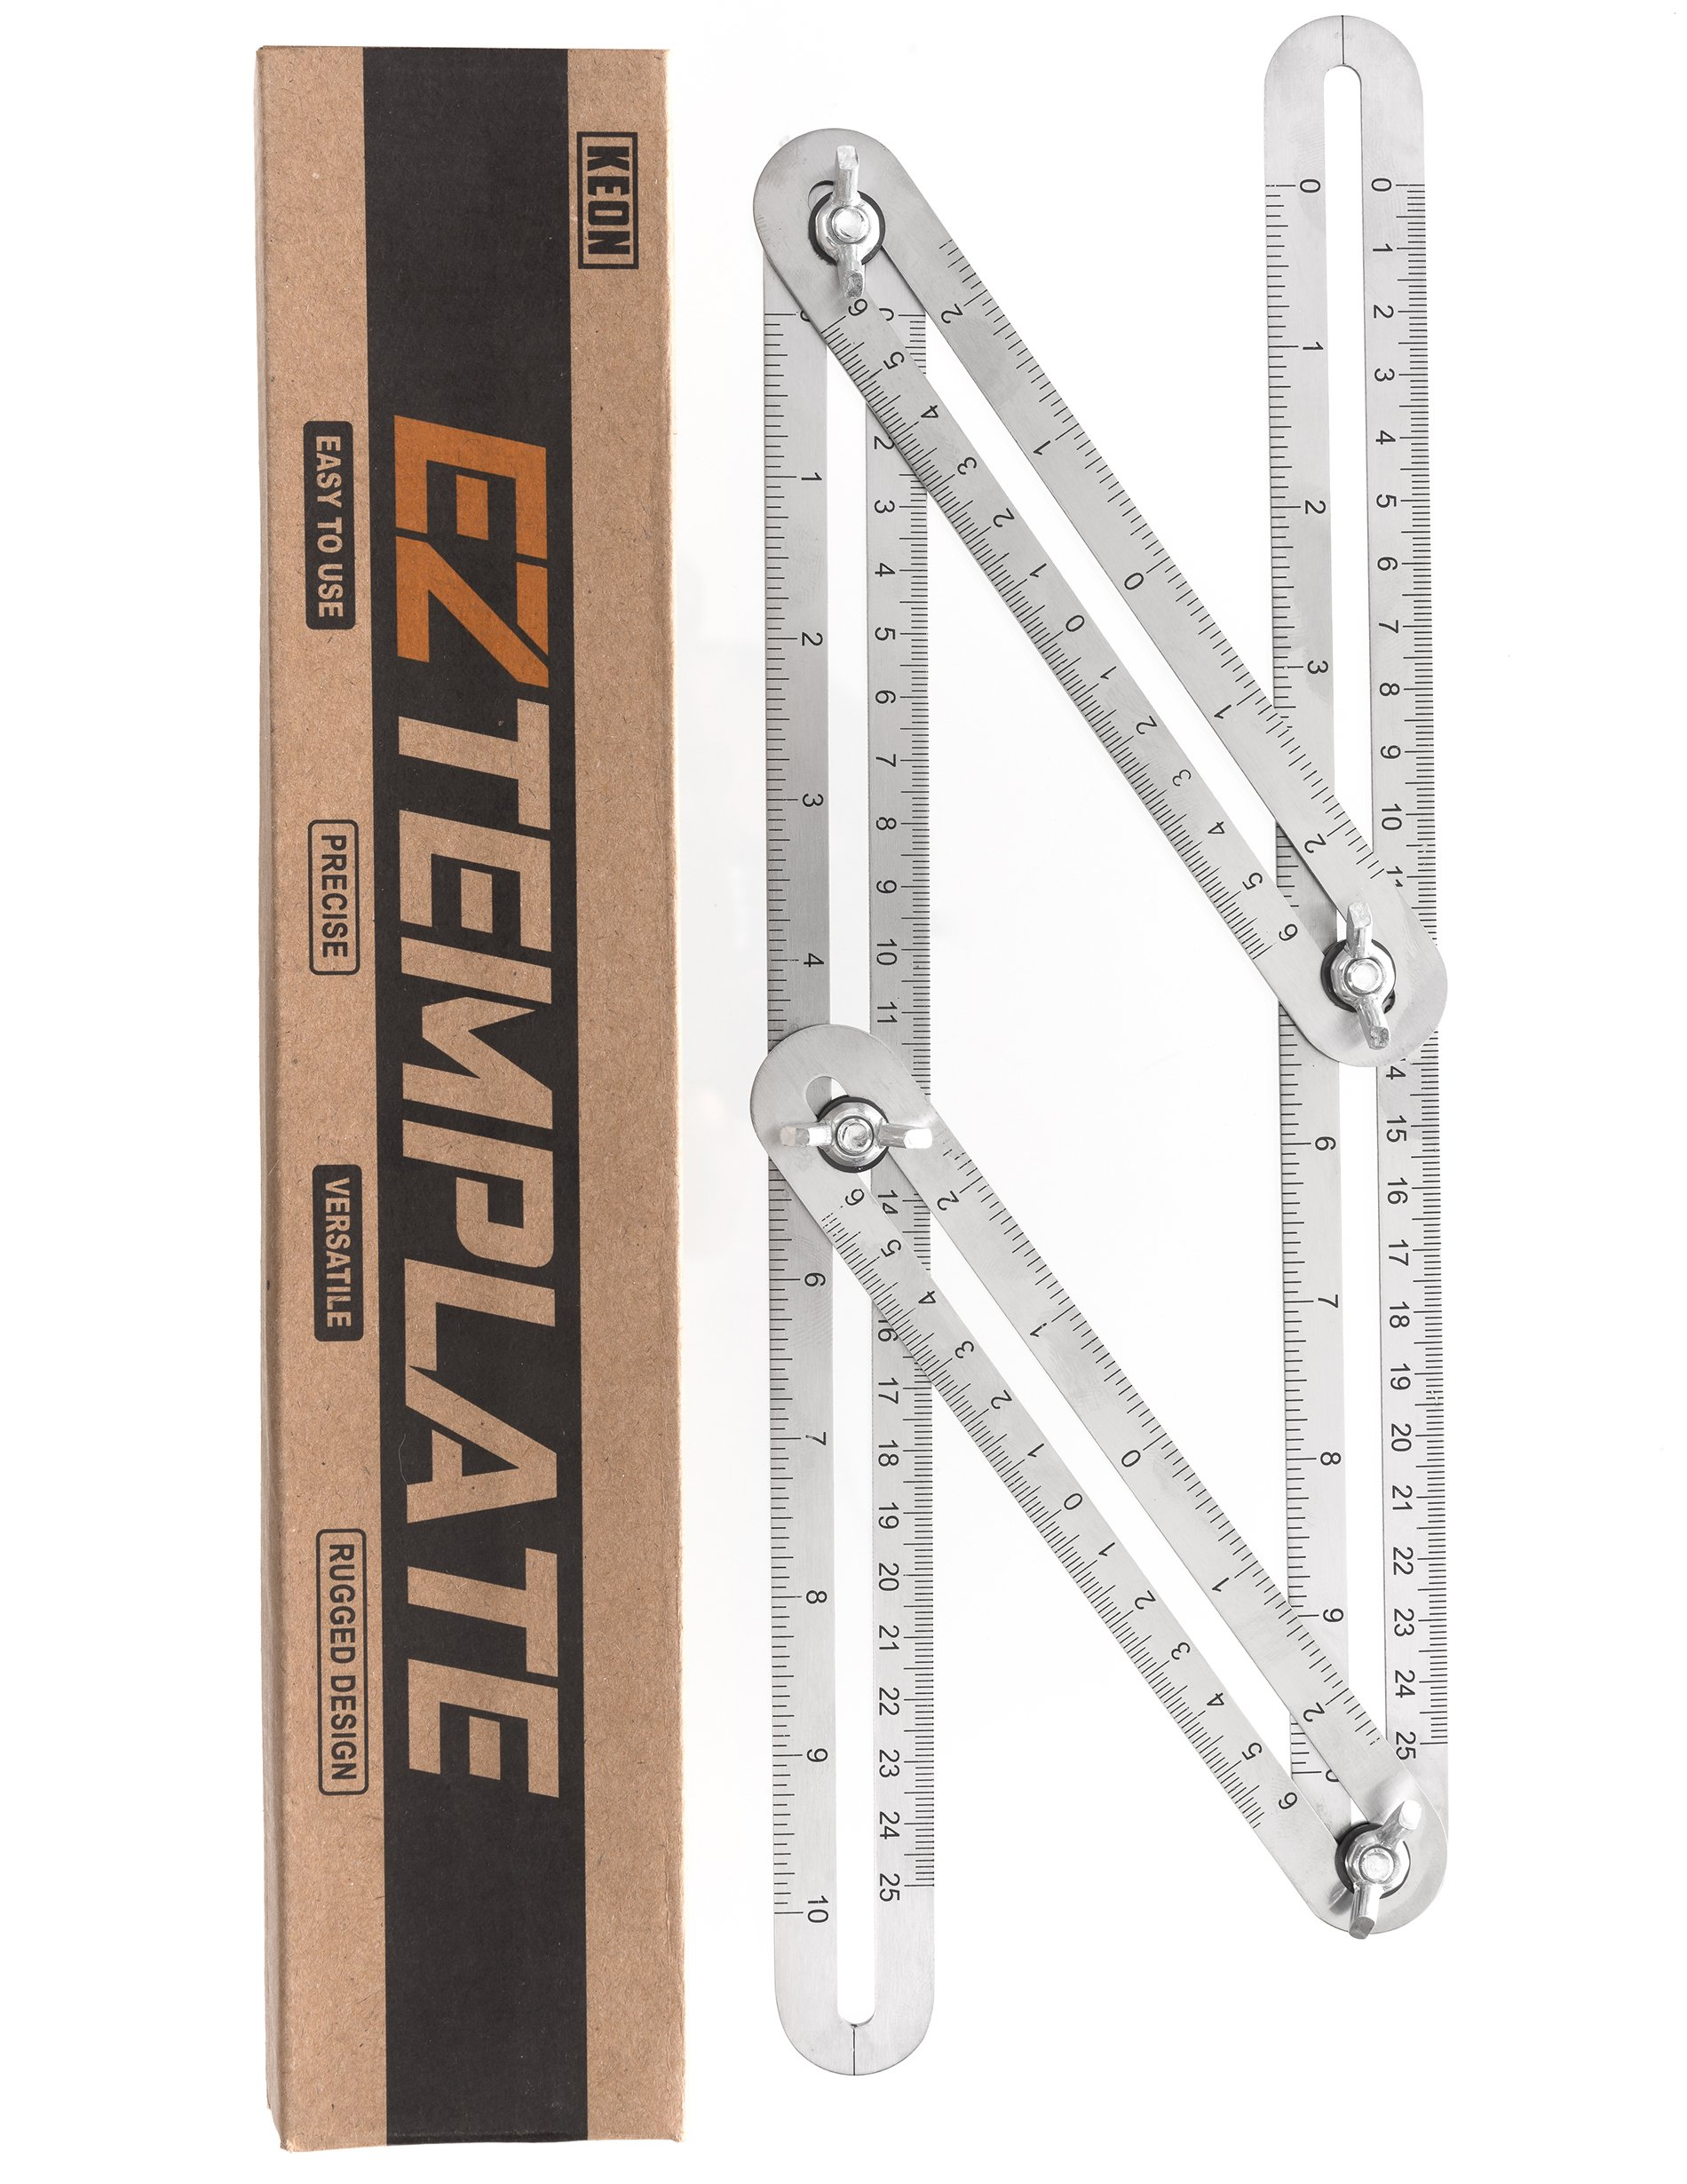 KEON Angleizer Template Tool - Premium Grade Stainless Steel - Great for Flooring, Tiling, Carpentry & Much More